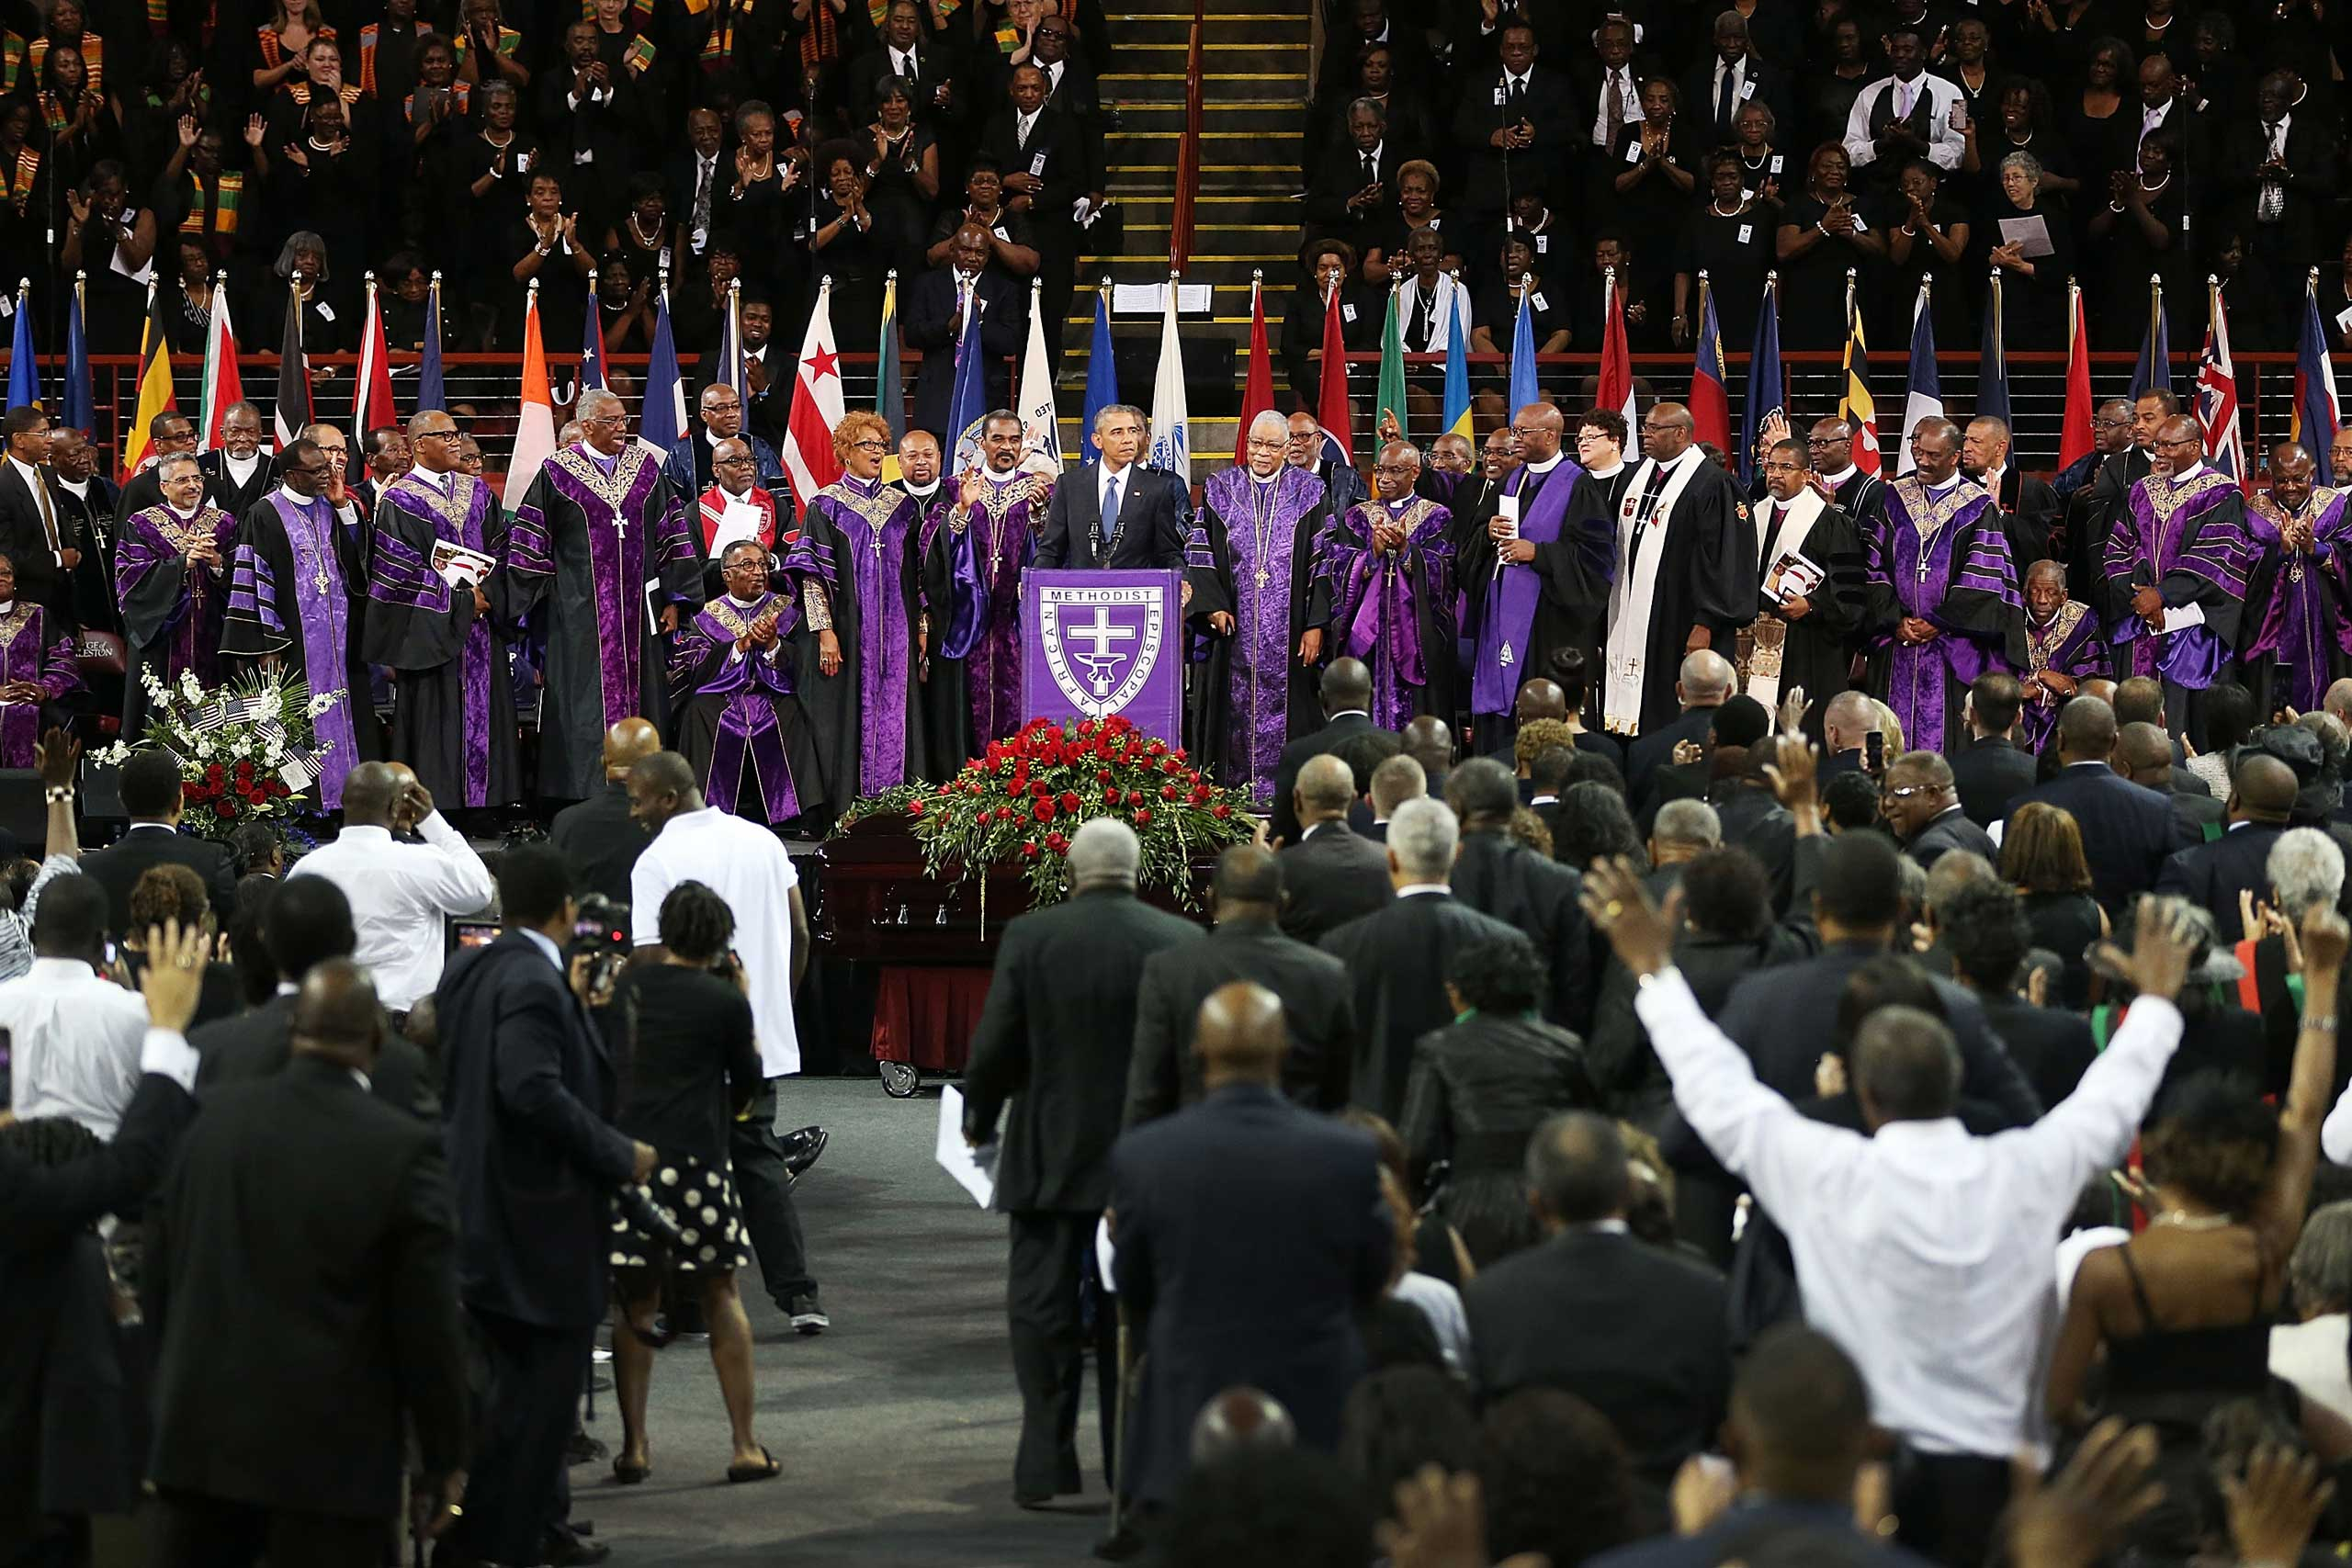 U.S. President Barack Obama delivers the eulogy for South Carolina state senator and Rev. Clementa Pinckney during Pinckney's funeral service June 26, 2015 in Charleston, South Carolina.